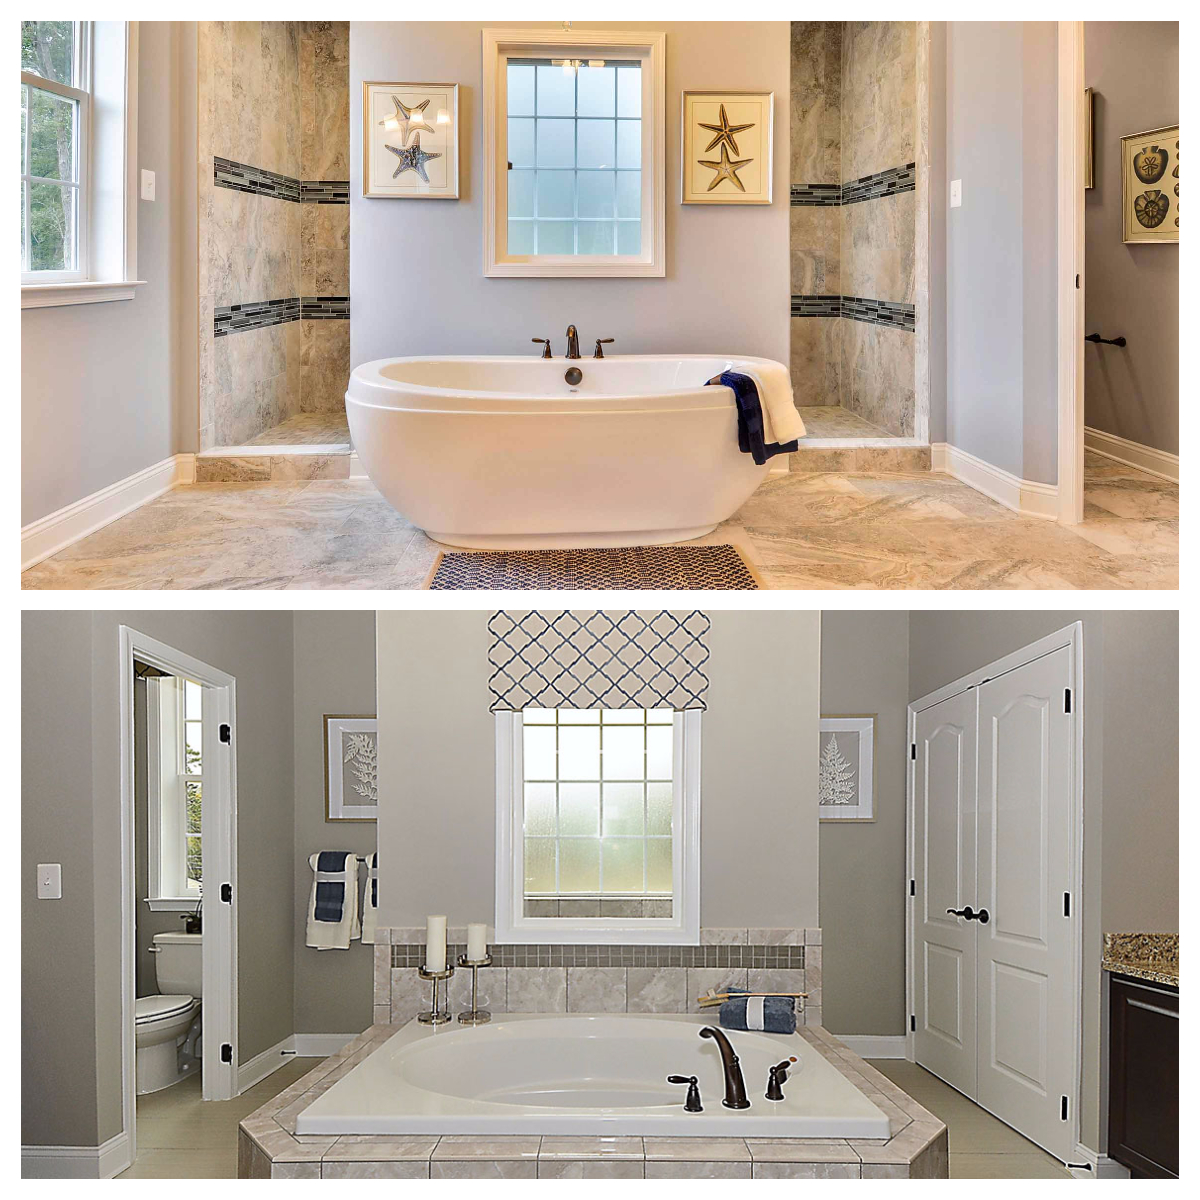 Lily Rose Blog: INTERIOR DESIGN | LUXURY BATHS | BY CARUSO HOMES